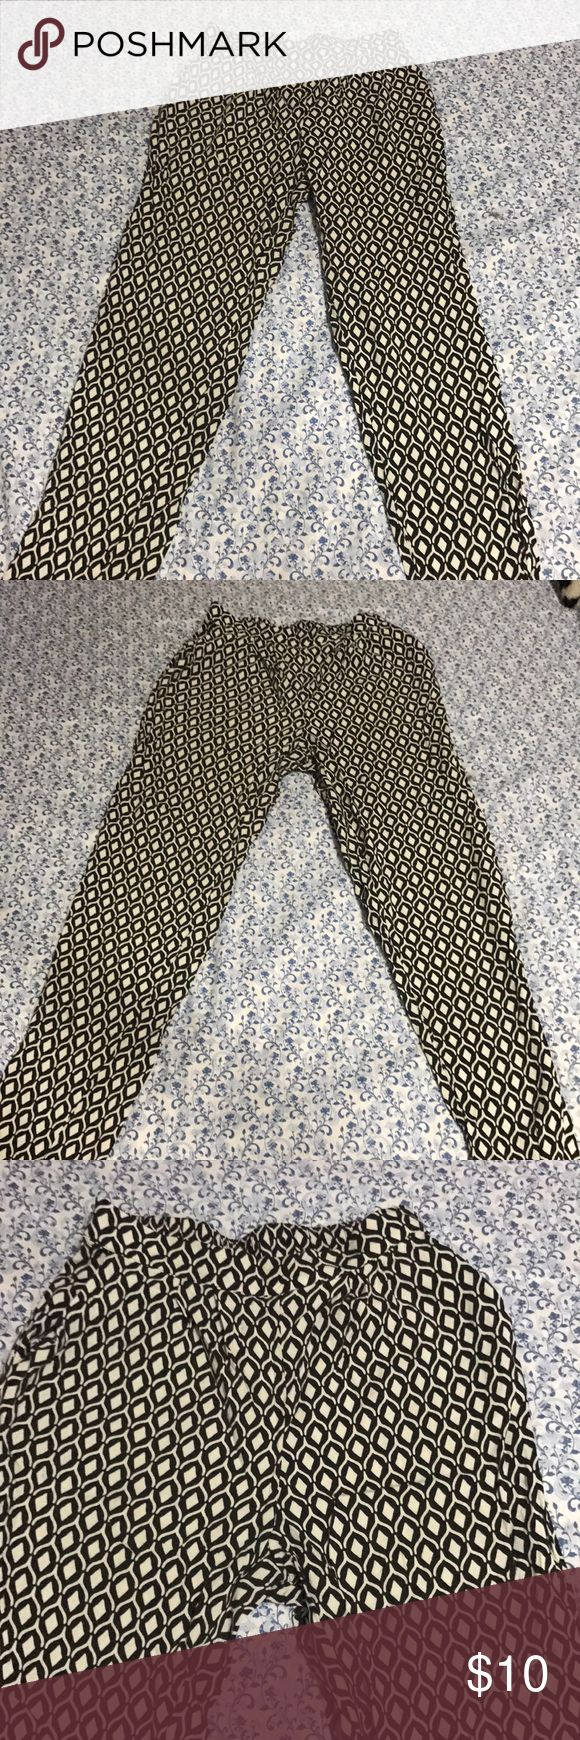 Women's Trousers Casual pants in black and white trendy pattern. Comes with pockets in pants, the fabric is very soft and light- perfect for those breezy evenings! #womensfashion#beautifulpants#trendy#pants#trousers#poshmark#loveandlust#perfectattire#professional#fashion H&M Pants Straight Leg